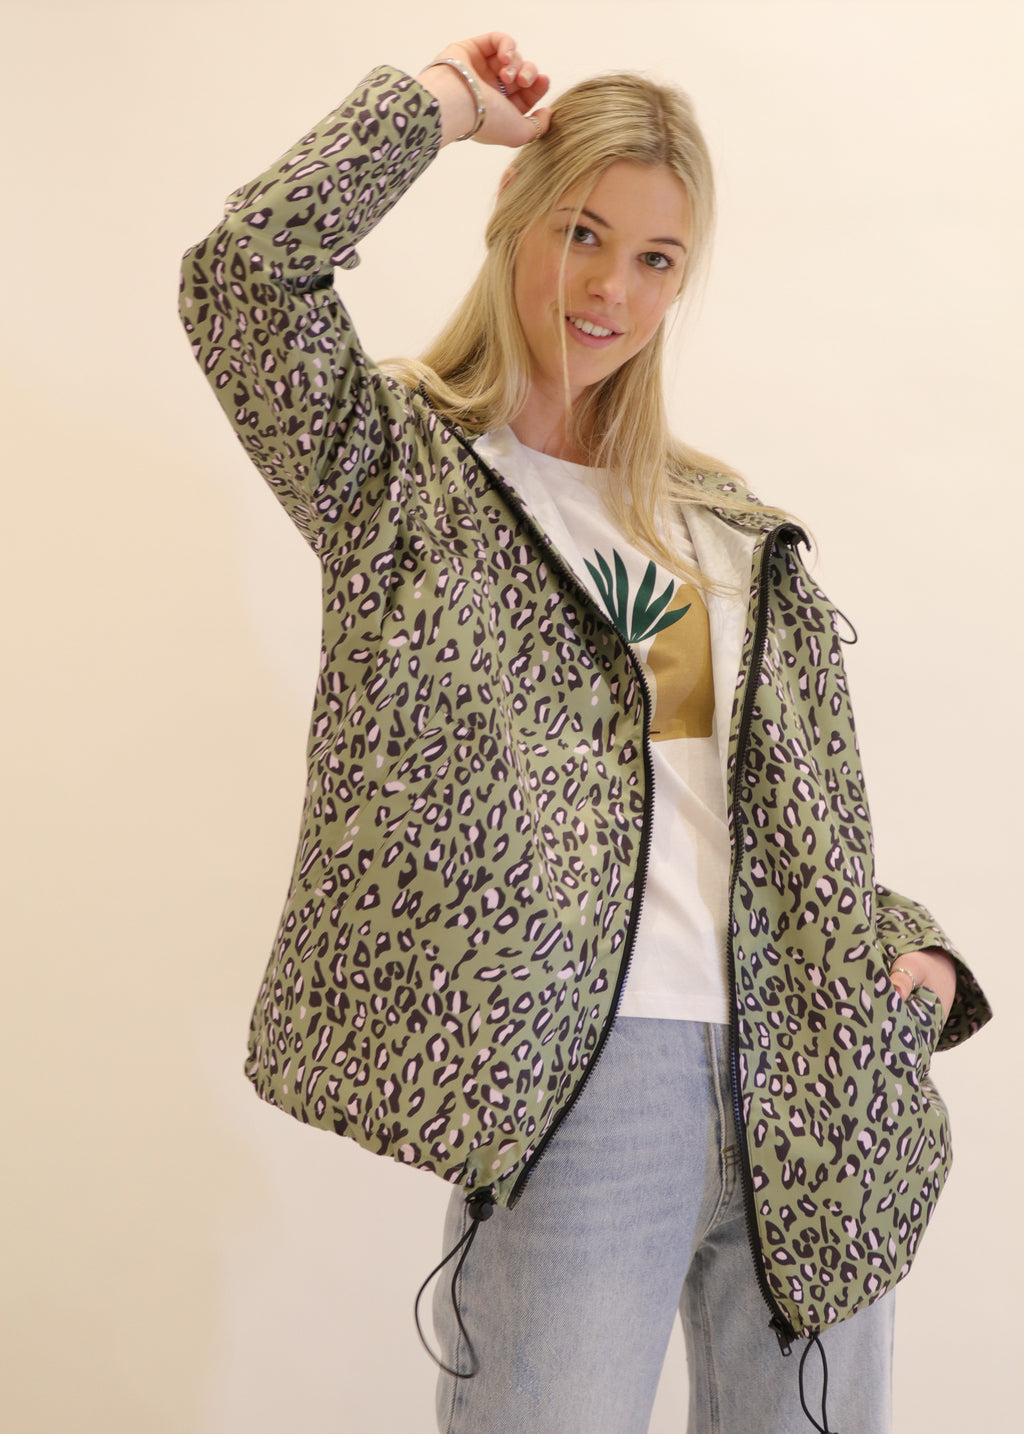 Leopard  Print  Raincoat In avocado green